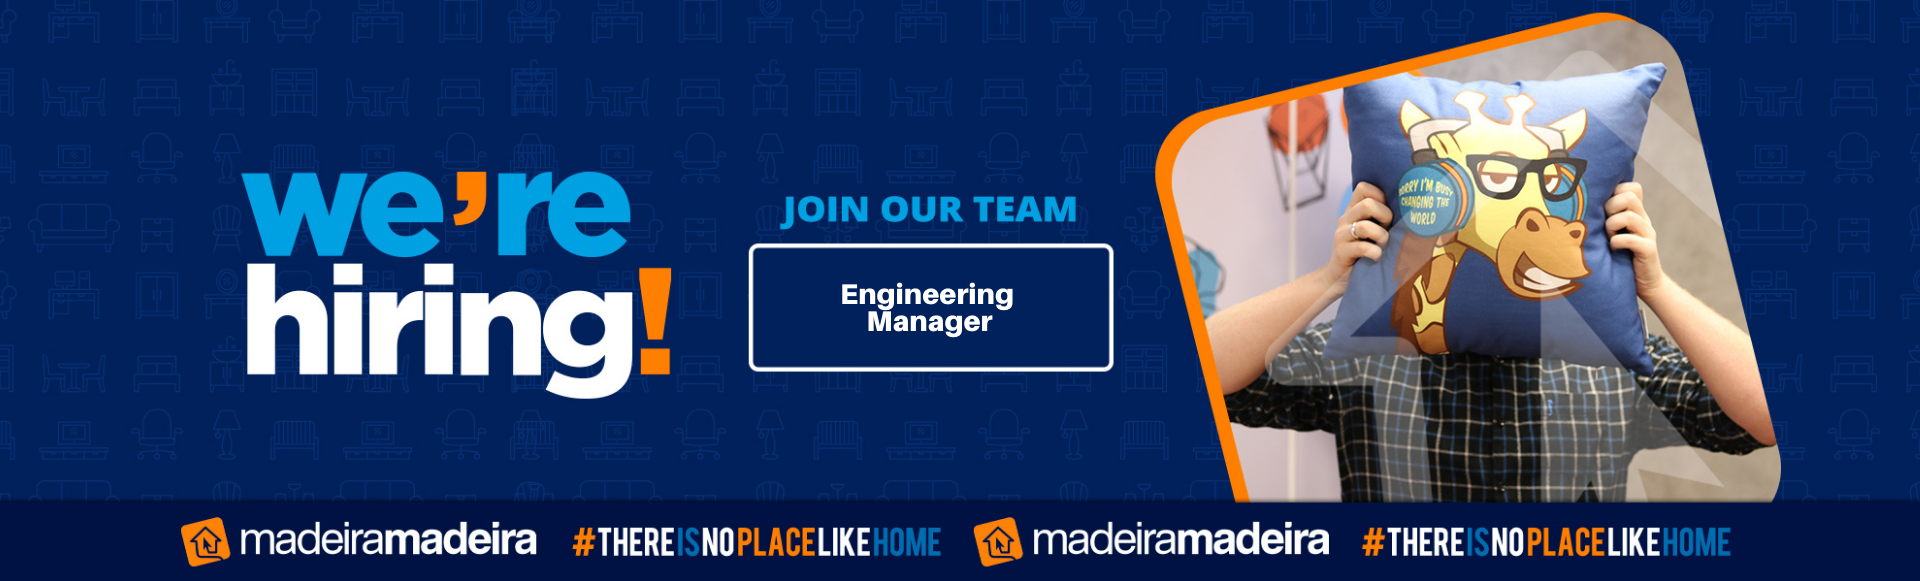 Engineering Manager